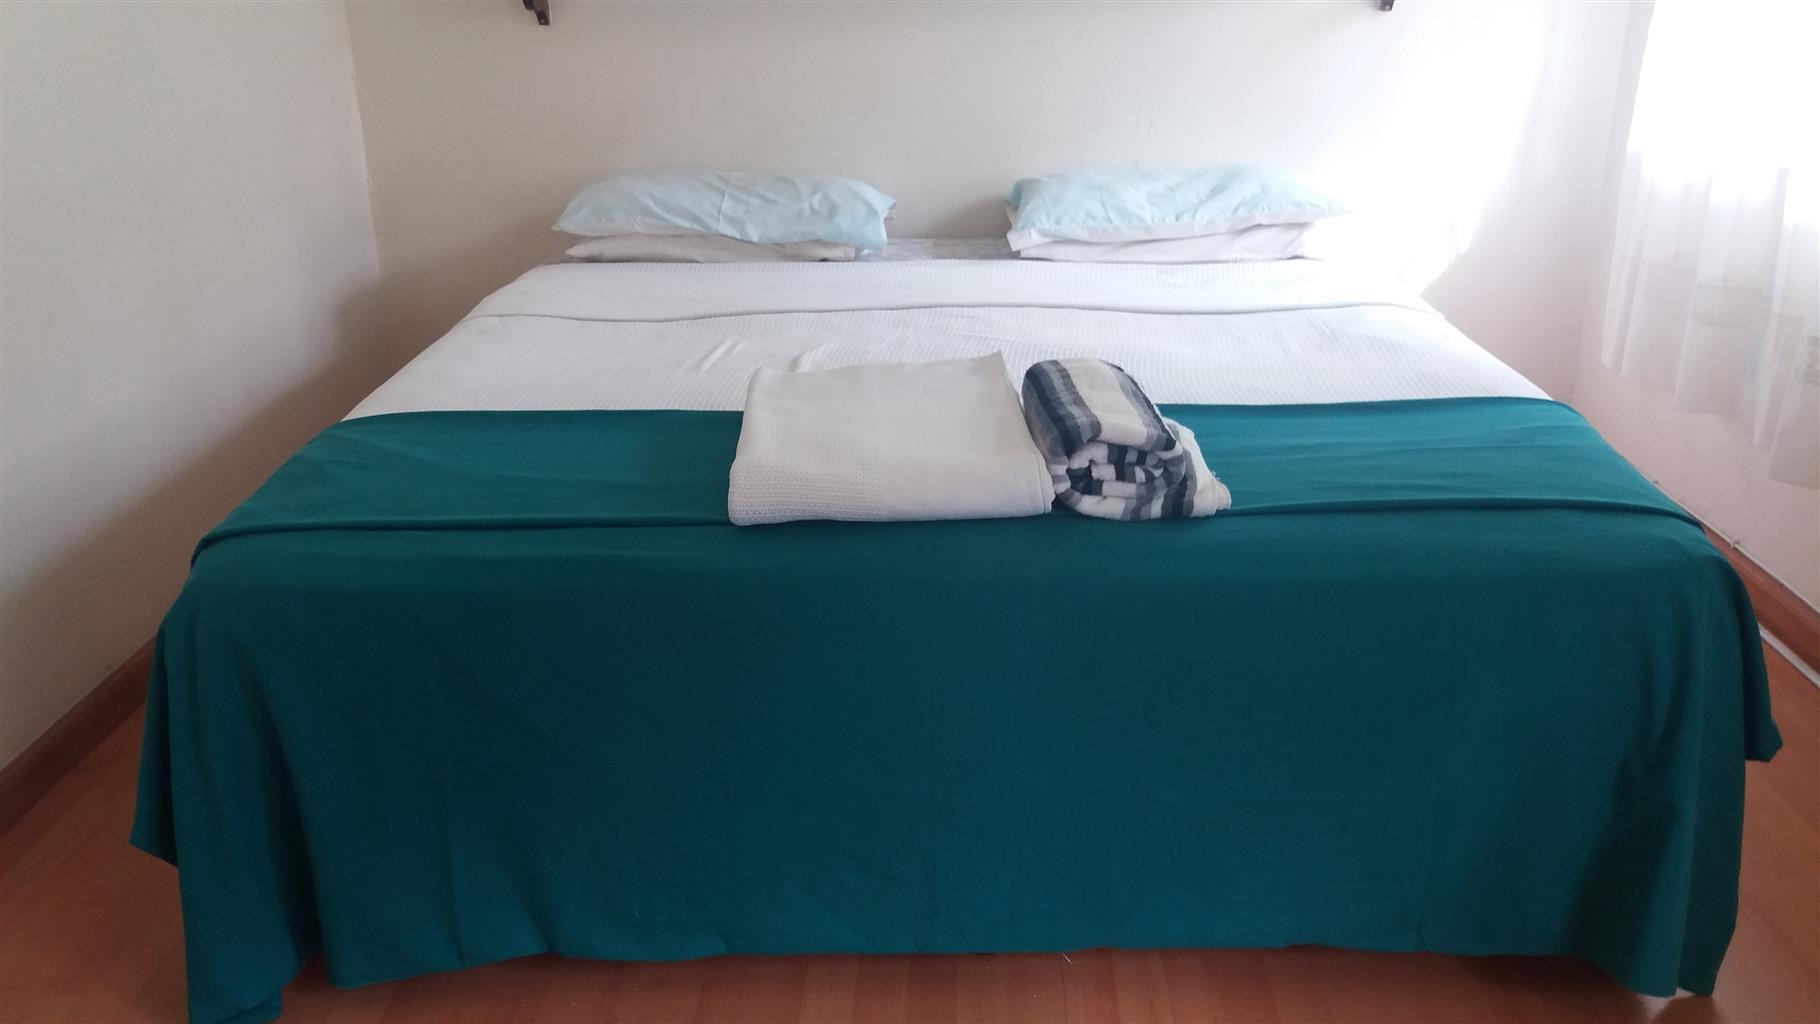 Super 3xbedroom thatched house available in Benoni AH